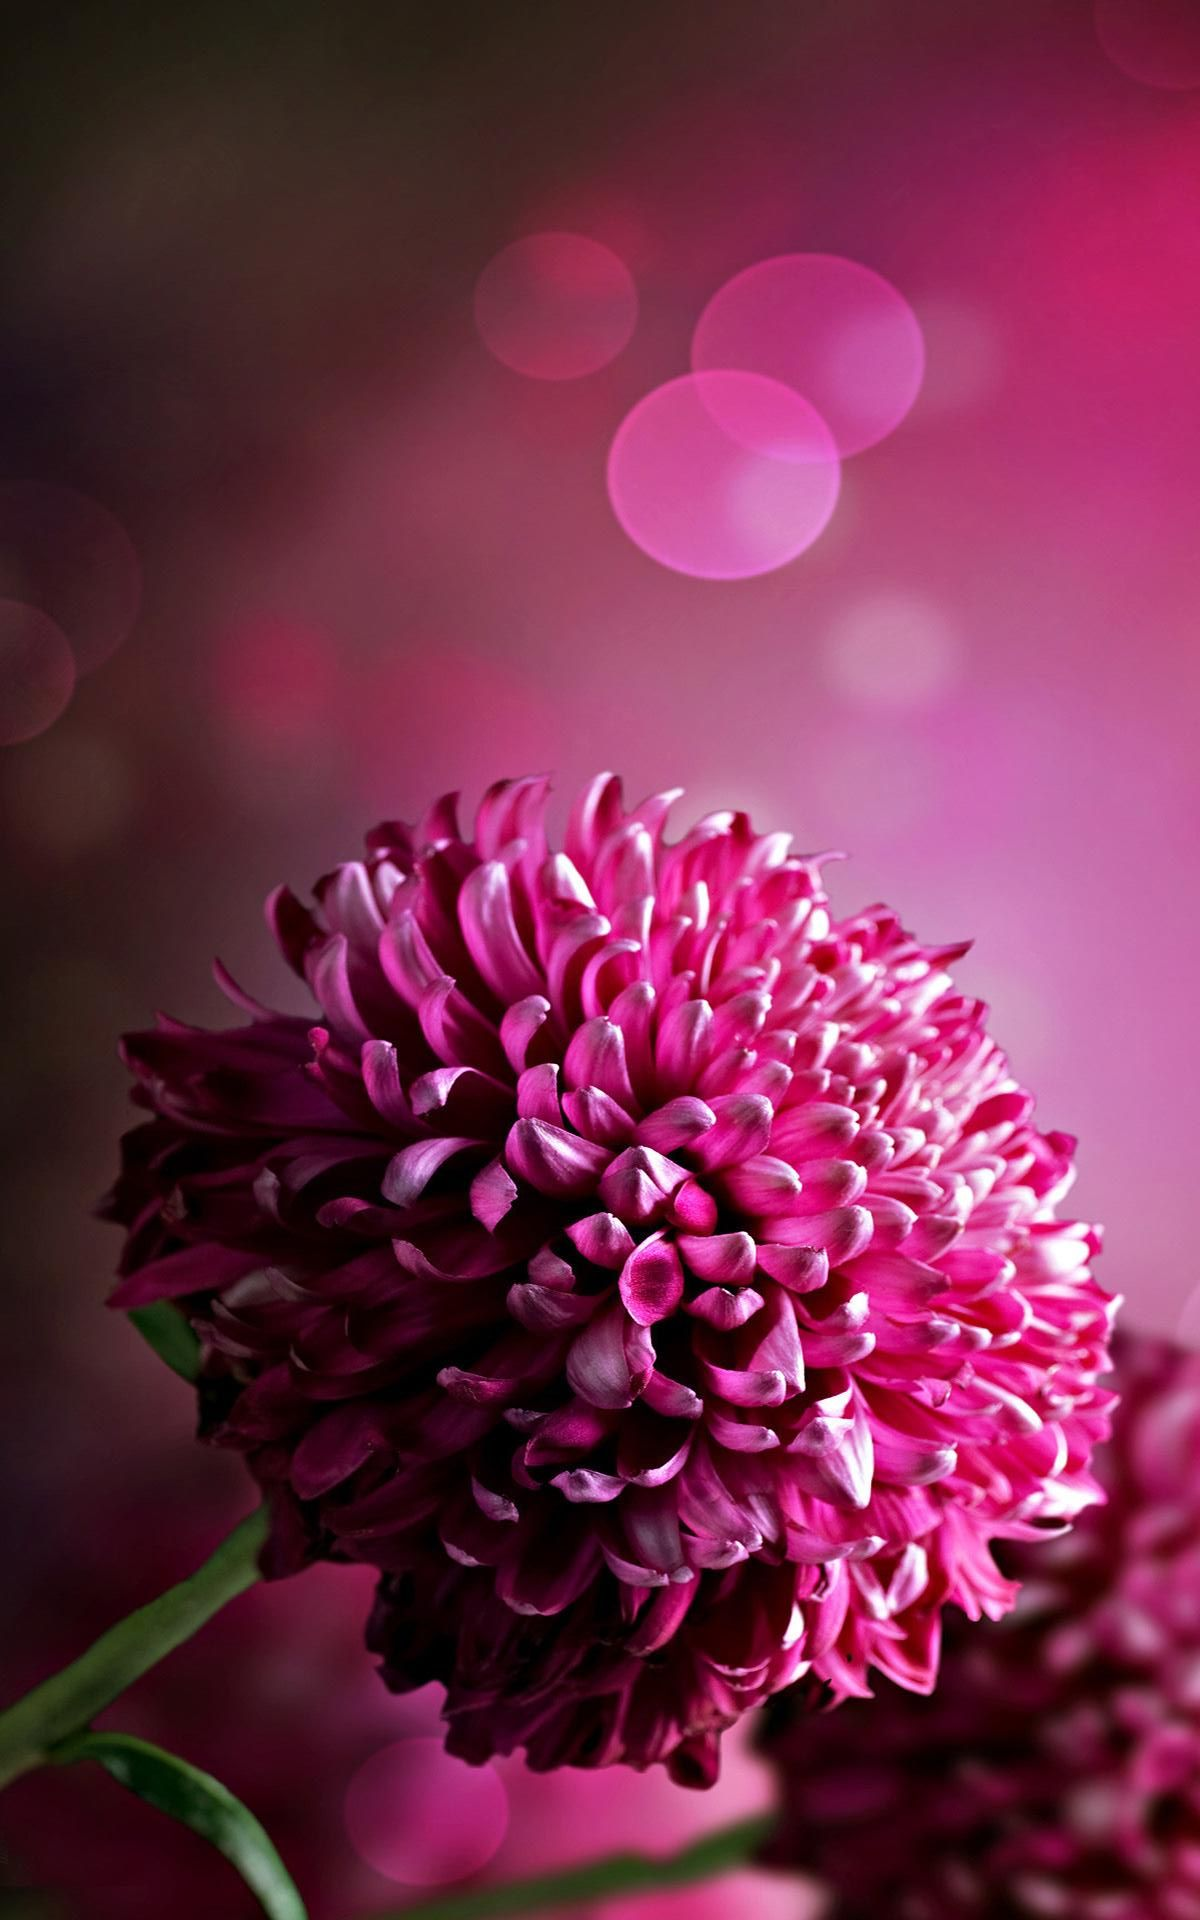 Dark Pink Chrysanthemum Wallpaper Iphone Purple Flowers Wallpaper Hd Flower Wallpaper Amazing Flowers